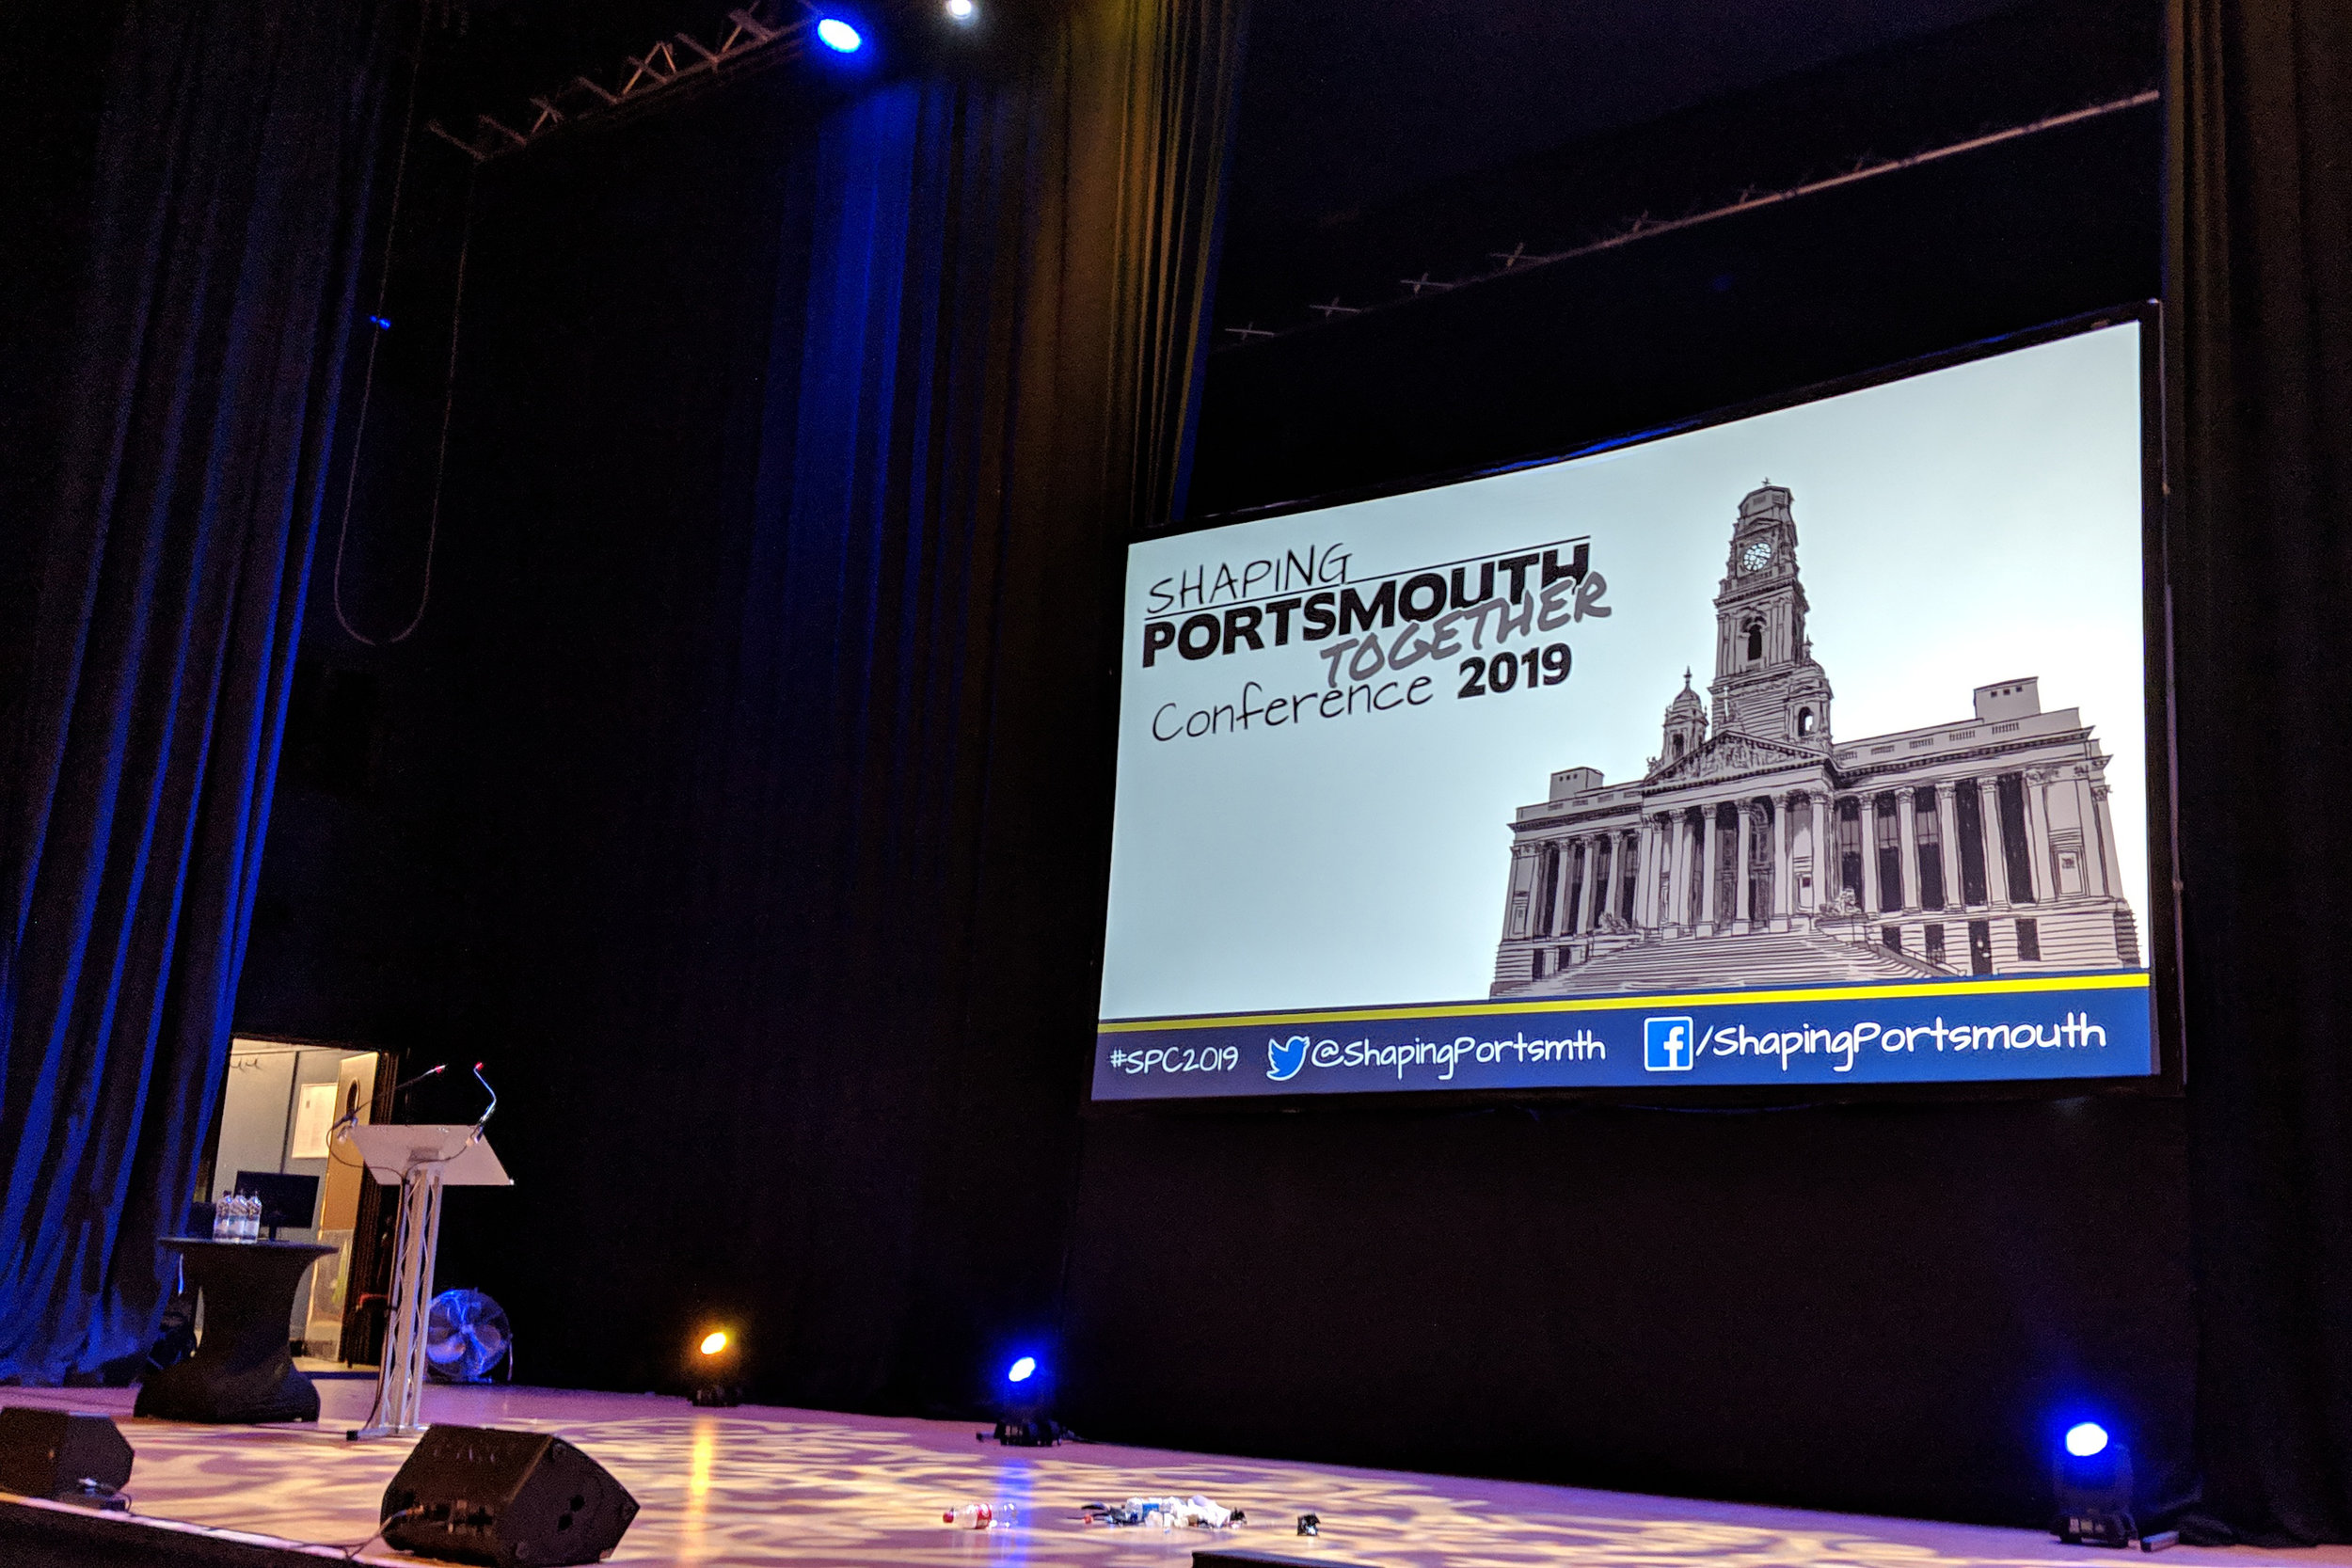 Shaping Portsmouth Conference 2019